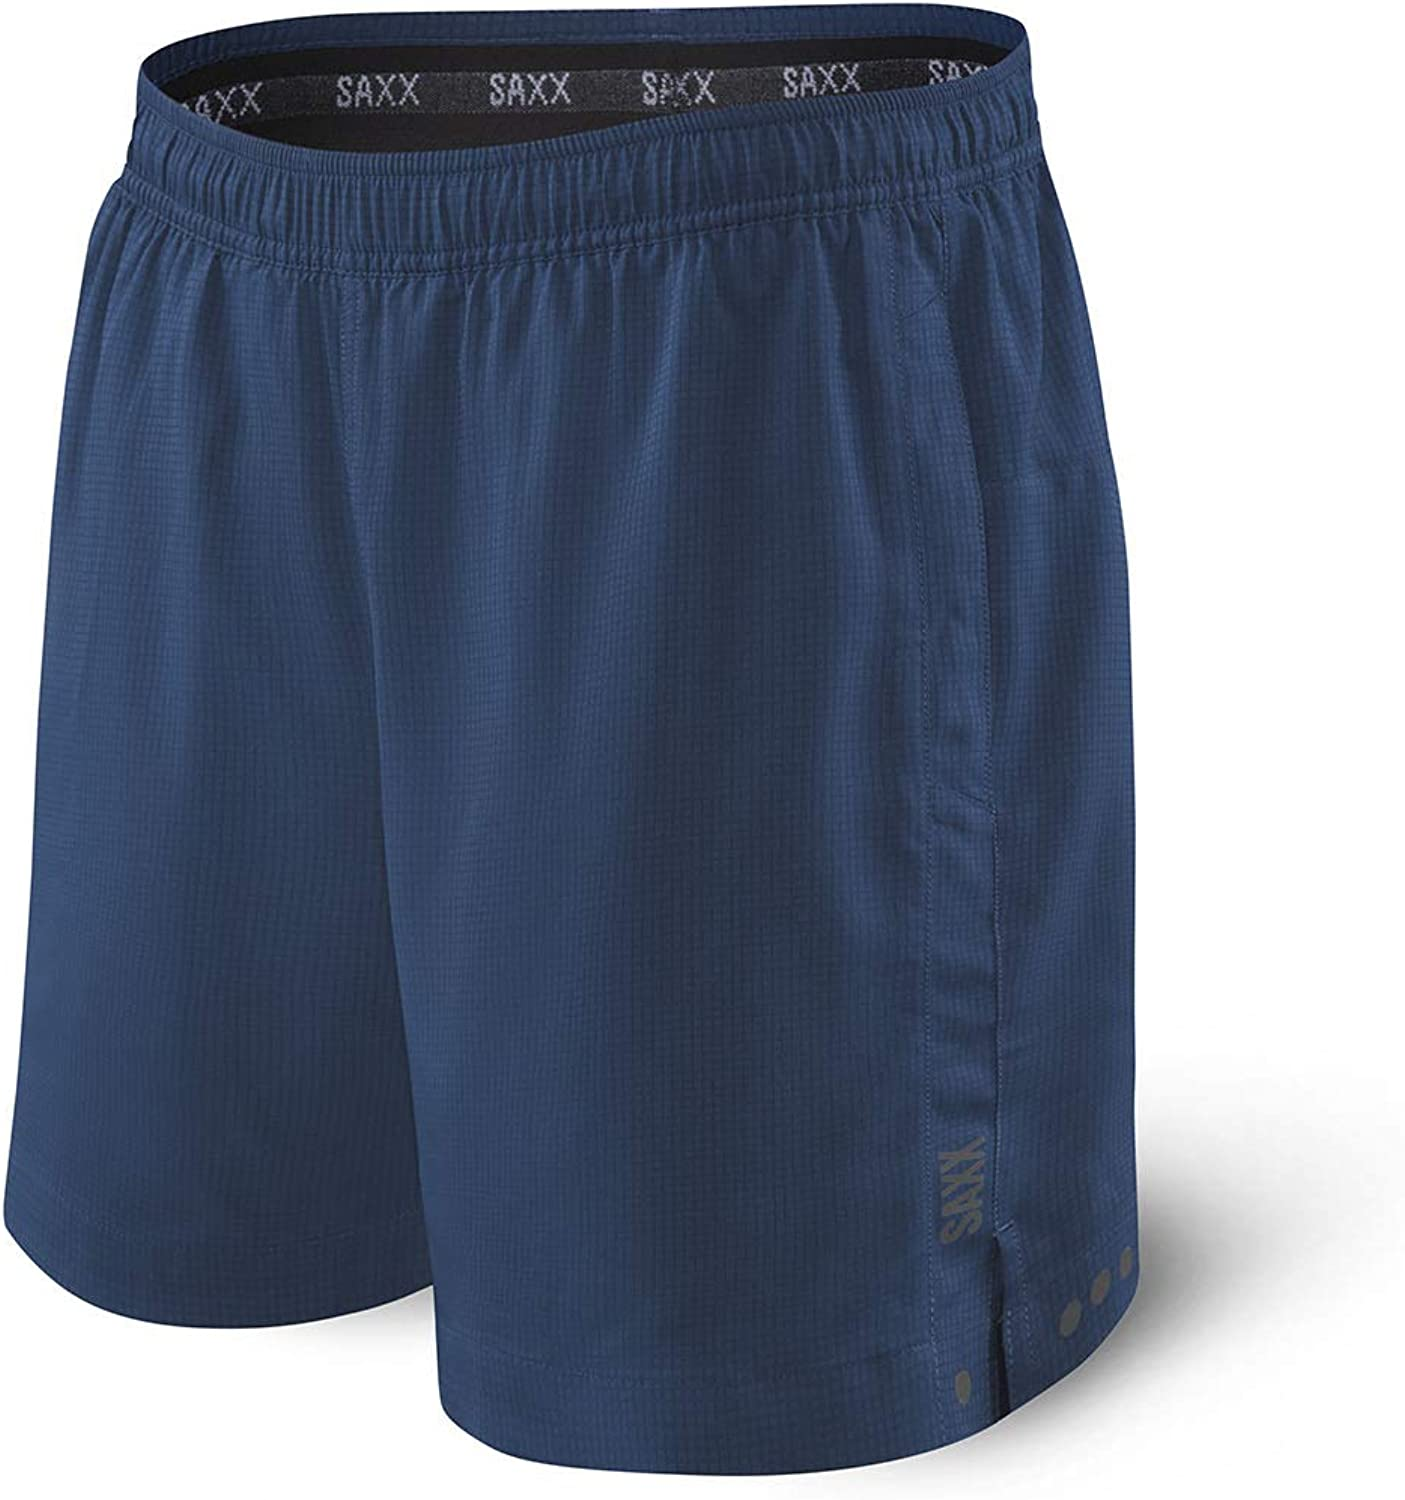 Saxx Men's Athletic Shorts – Kinetic 2N1 Sport Shorts - Workout, Running and Training, Breathable Shorts with Pockets